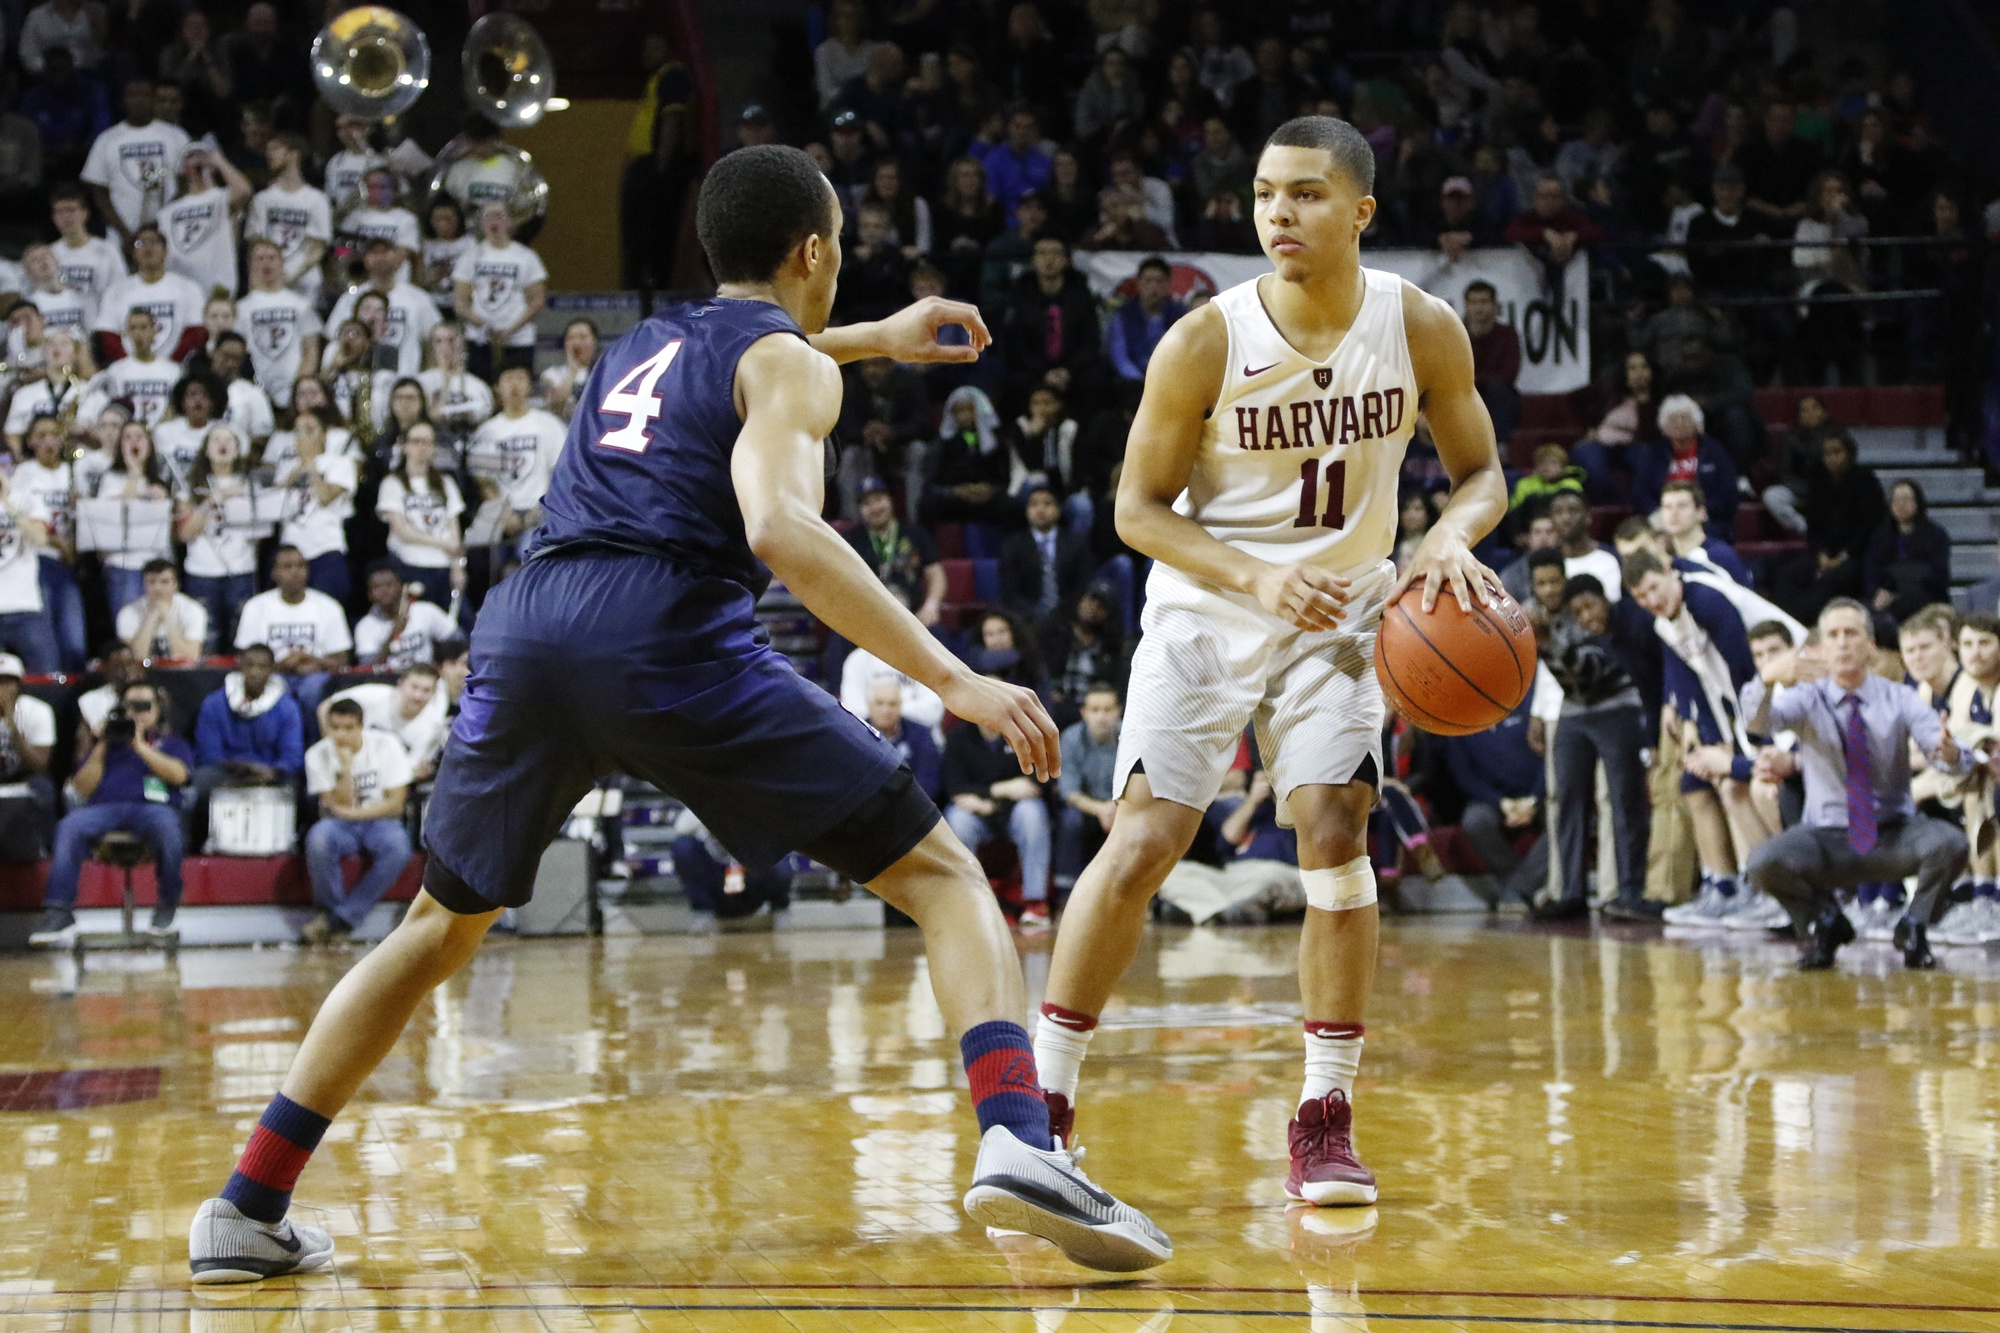 Freshman Bryce Aiken helped lead the Harvard men's basketball team to an 18-10 campaign. The point guard took home Ivy League Rookie of the Year honors.